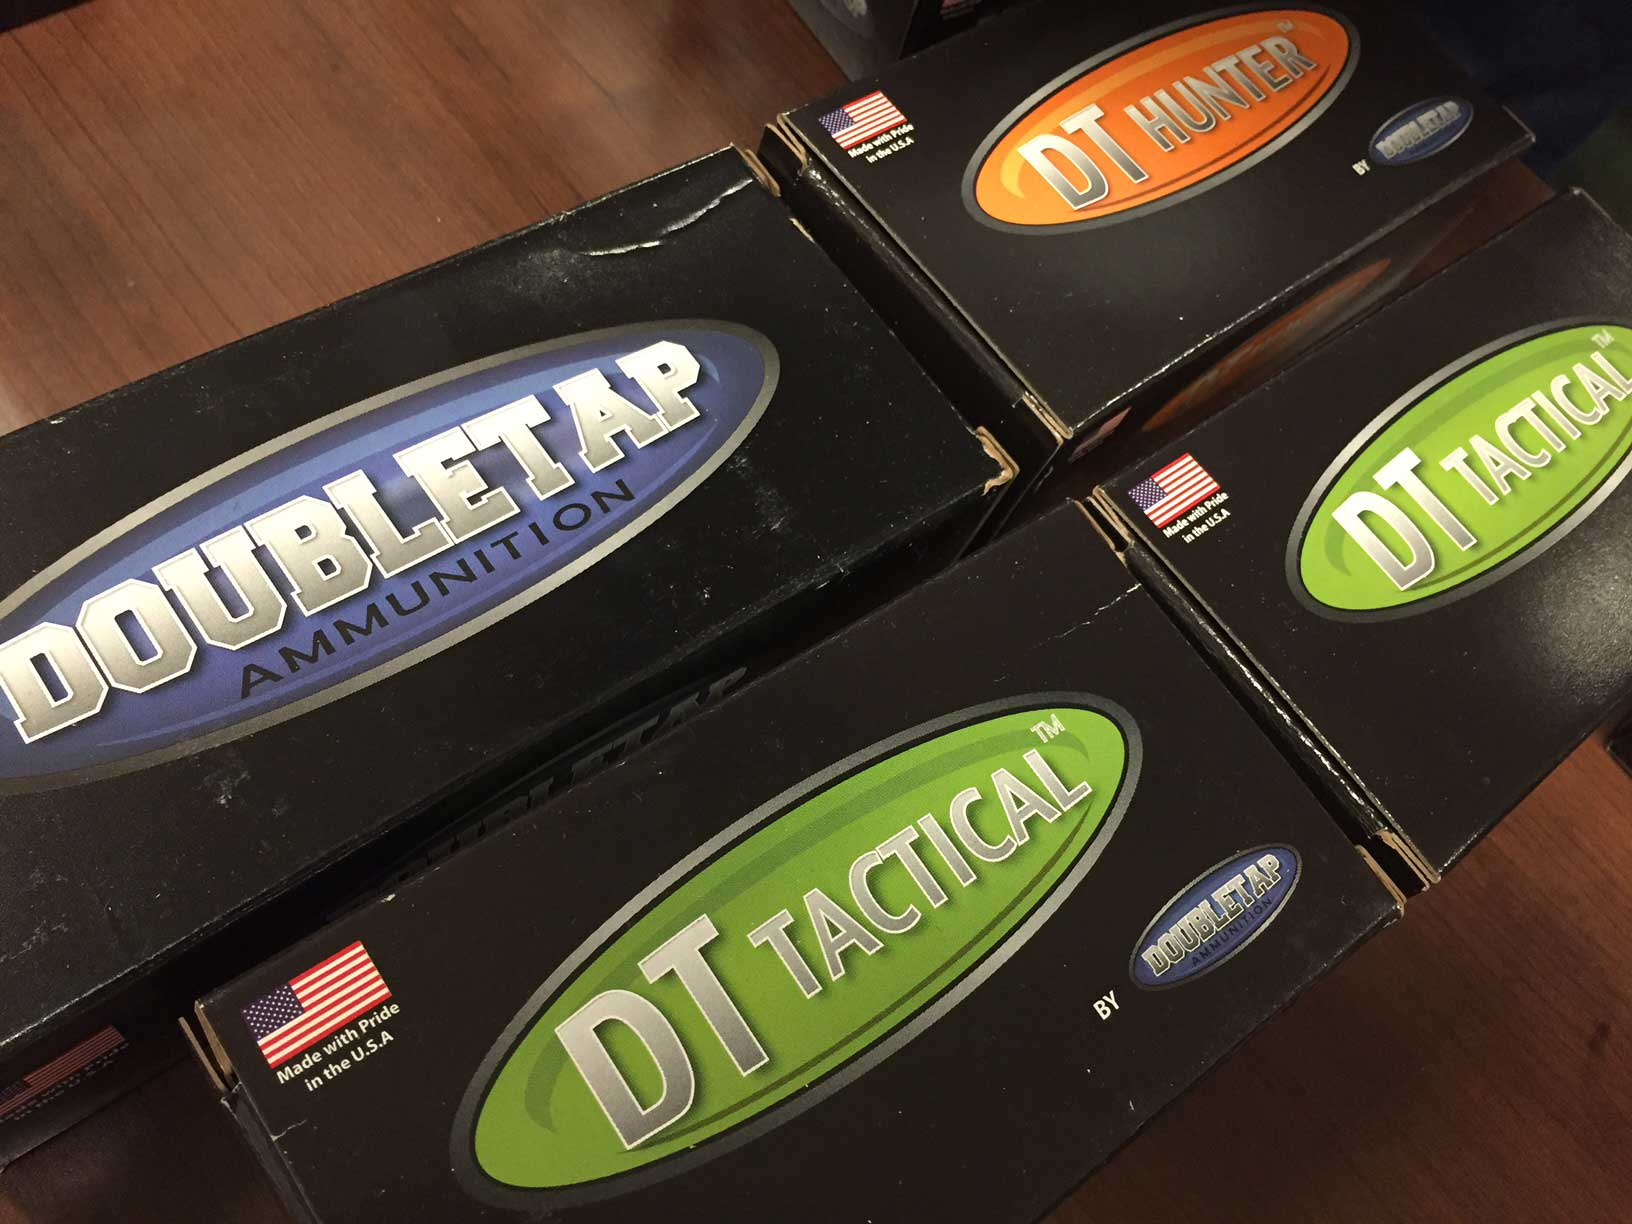 Boxes of DoubleTap Defense and tactical ammunition